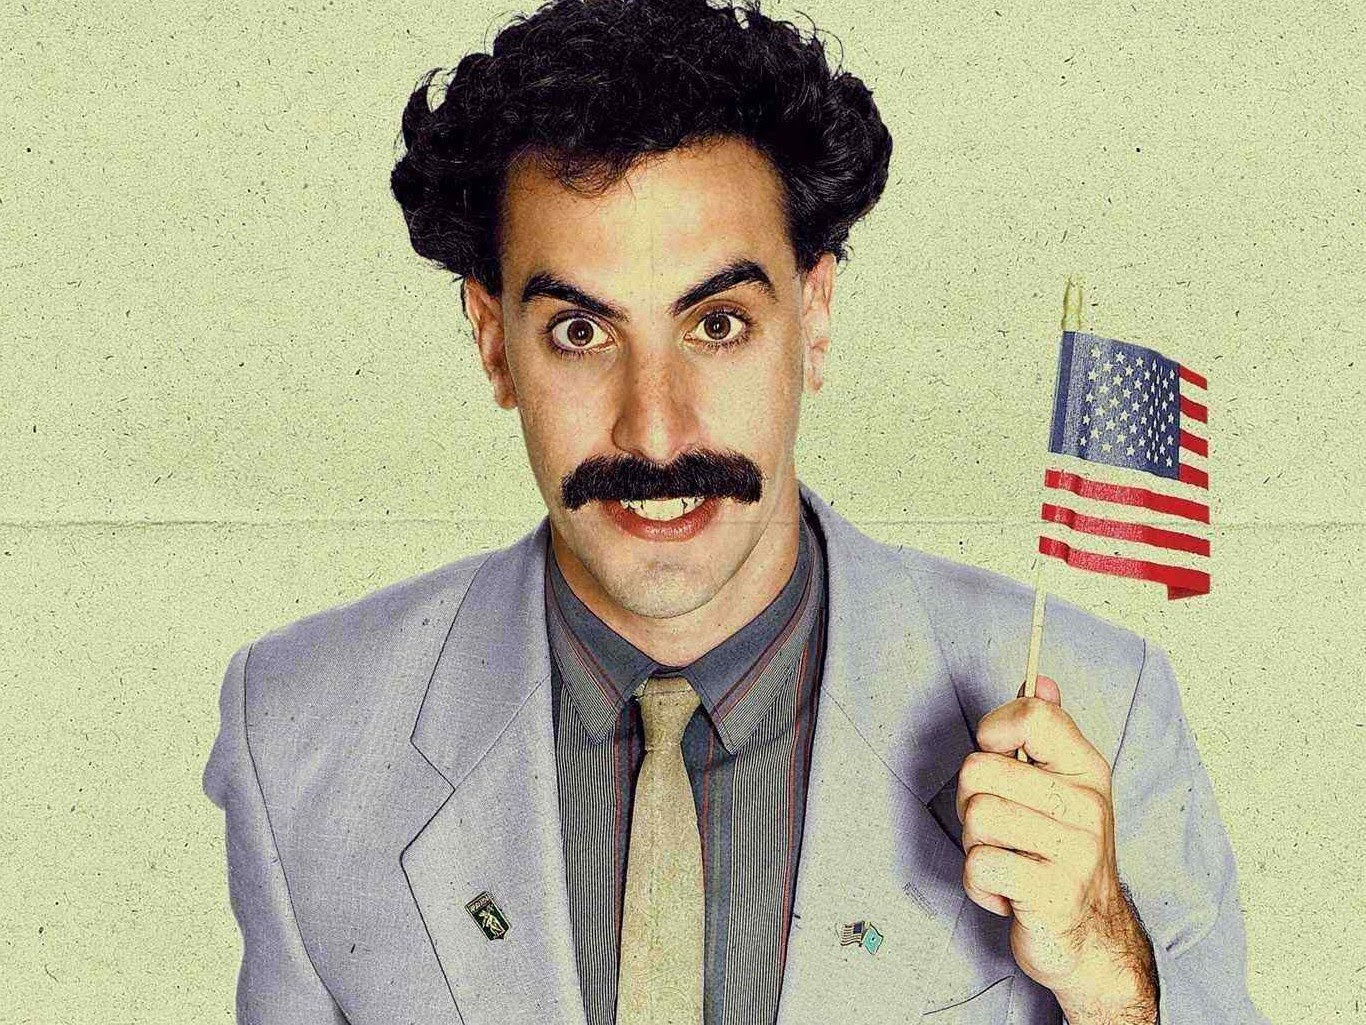 Borat: A Very, Very, Nice Comedy | CinematicSacha Baron Cohen Movies